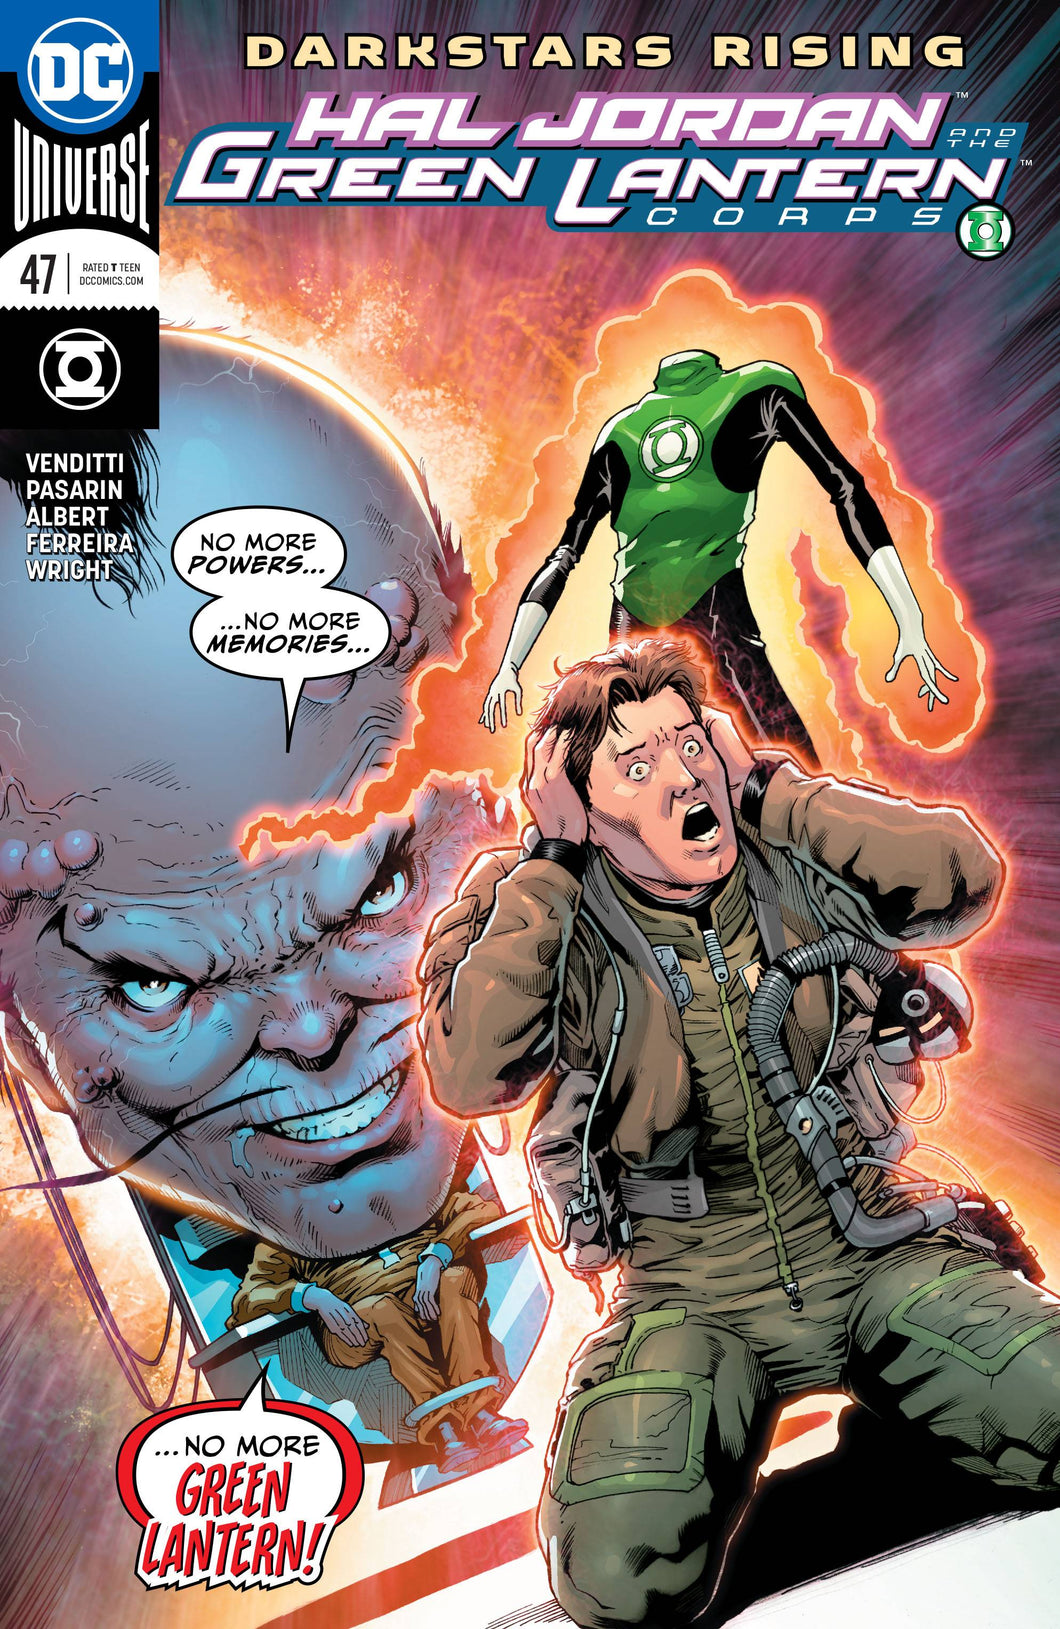 HAL JORDAN AND THE GREEN LANTERN CORPS #47 (06/27/2018)